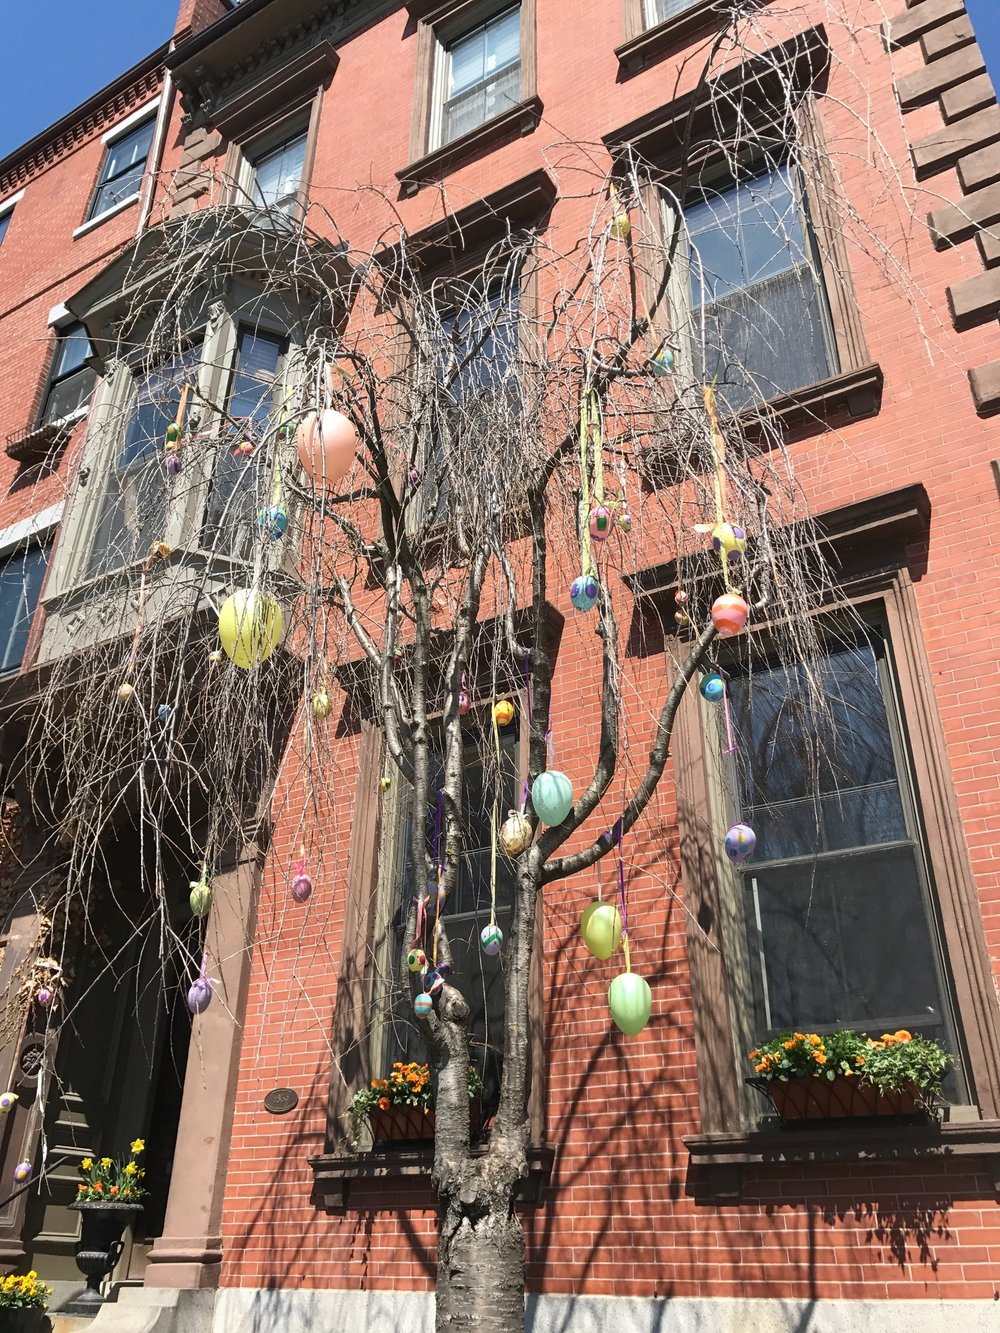 House accross the street from the monument, a few days before easter